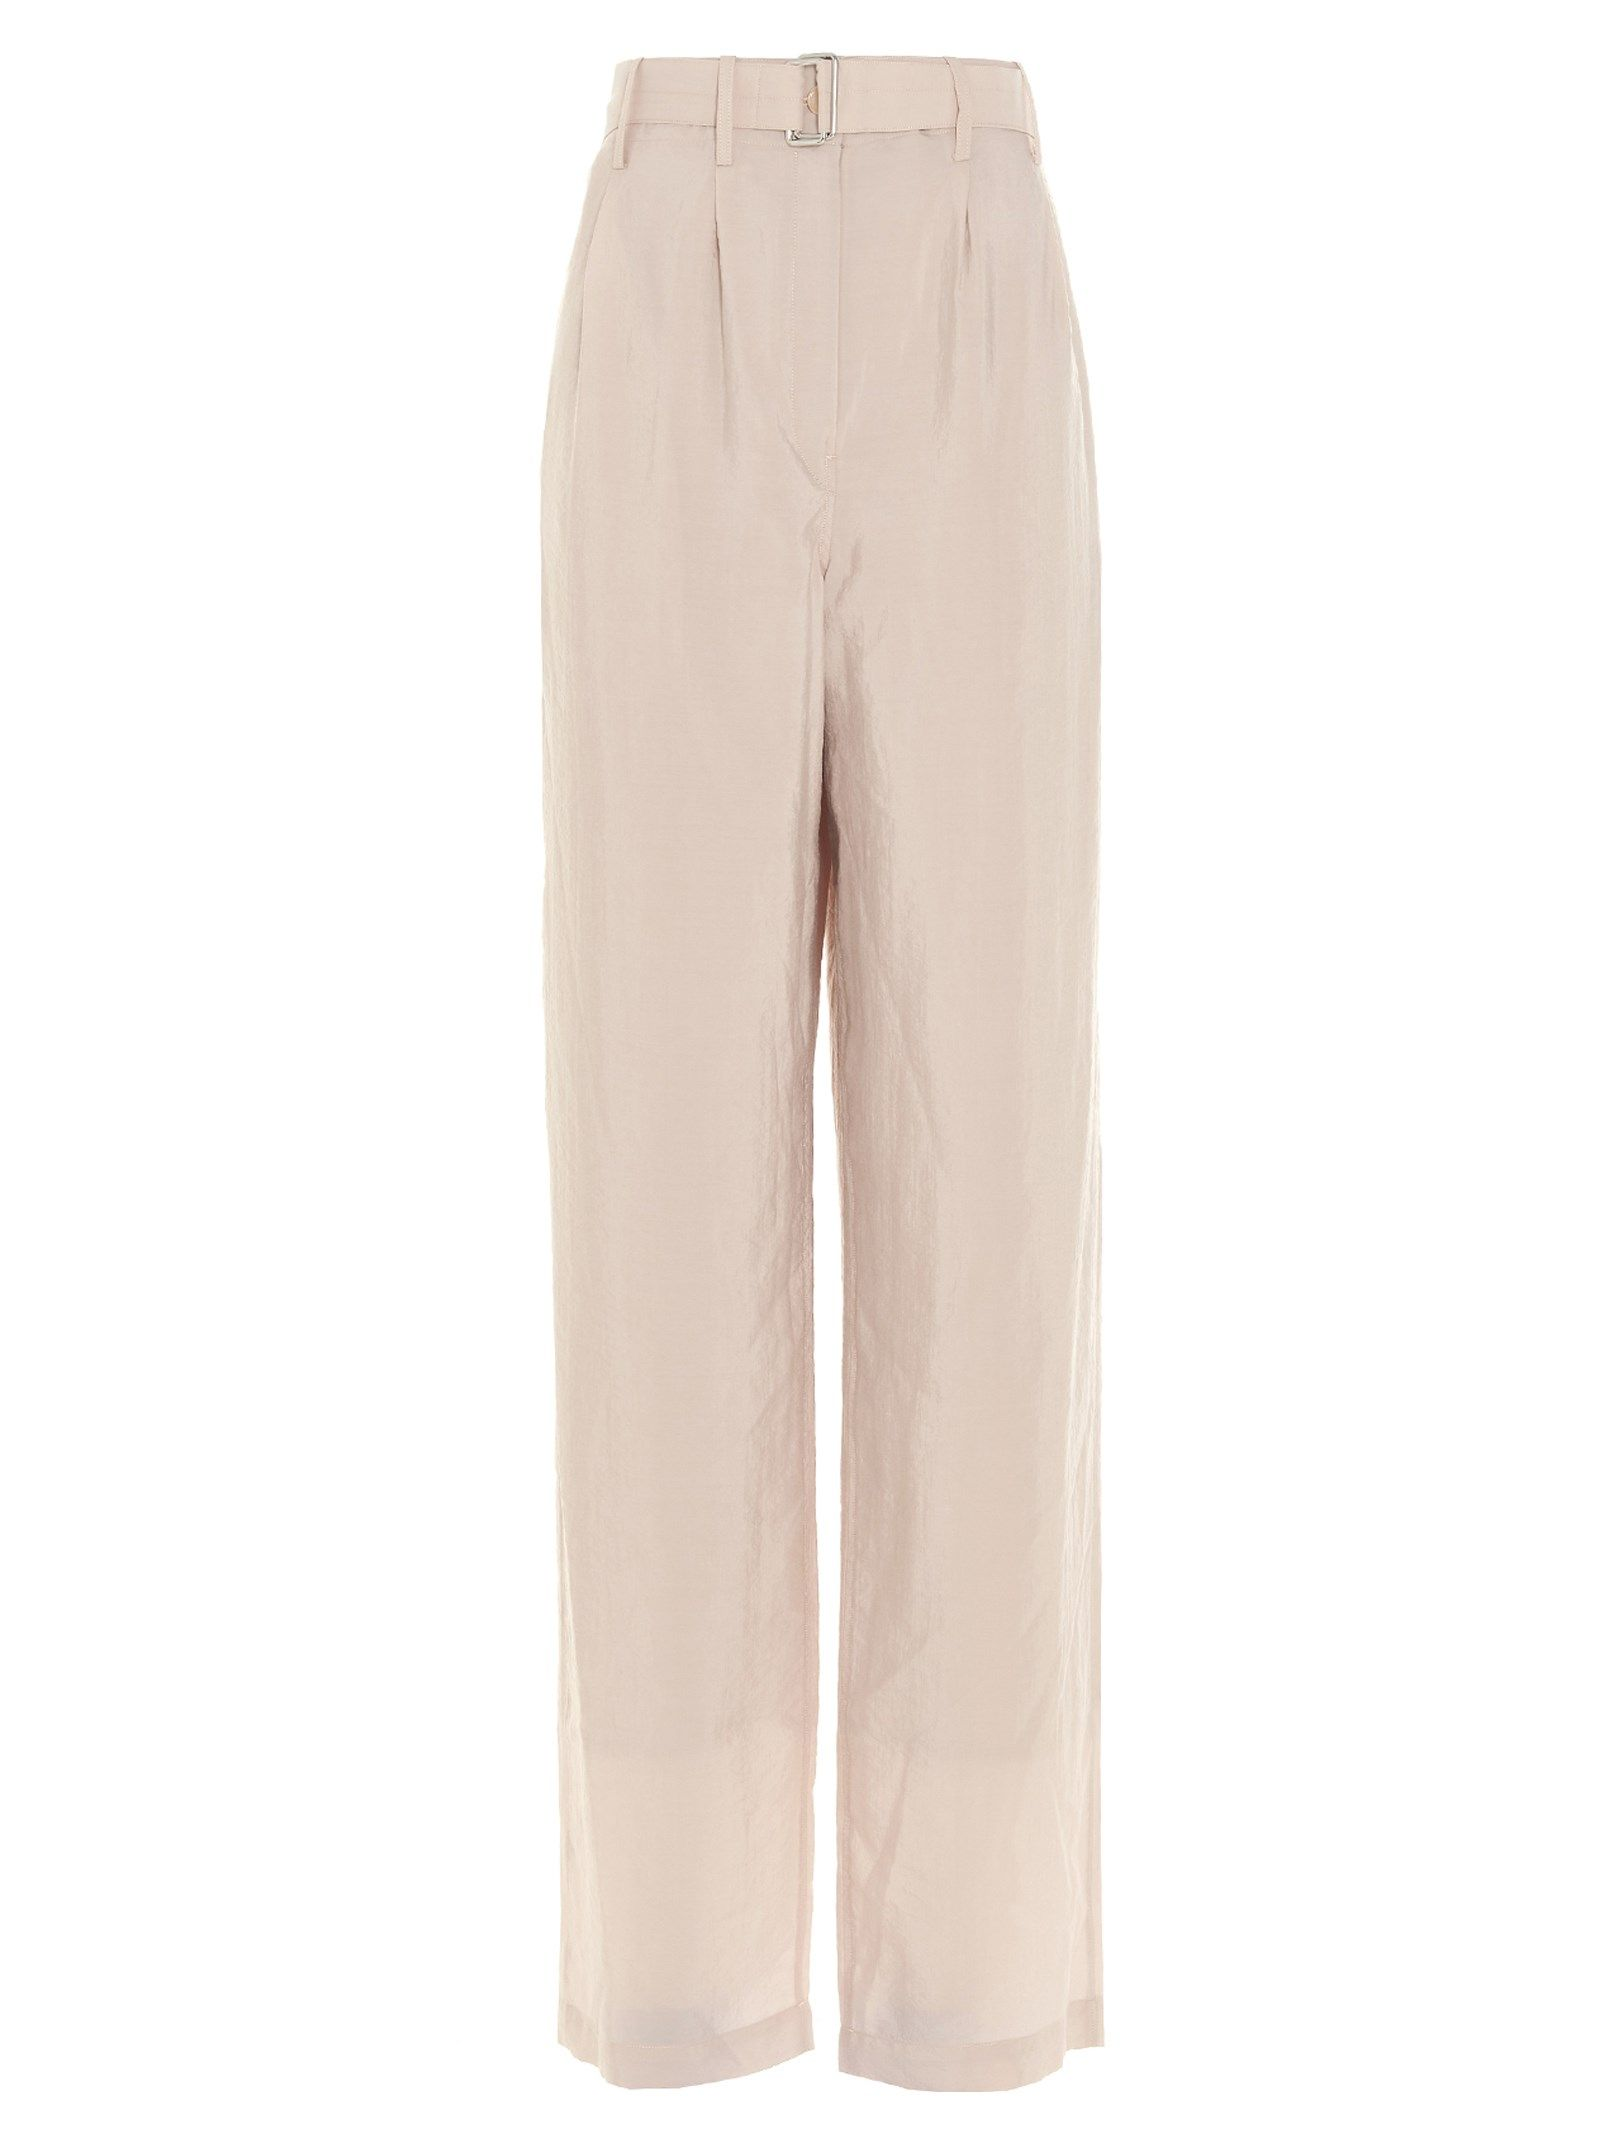 Lemaire LEMAIRE WOMEN'S W211PA289LF208320 PINK OTHER MATERIALS PANTS